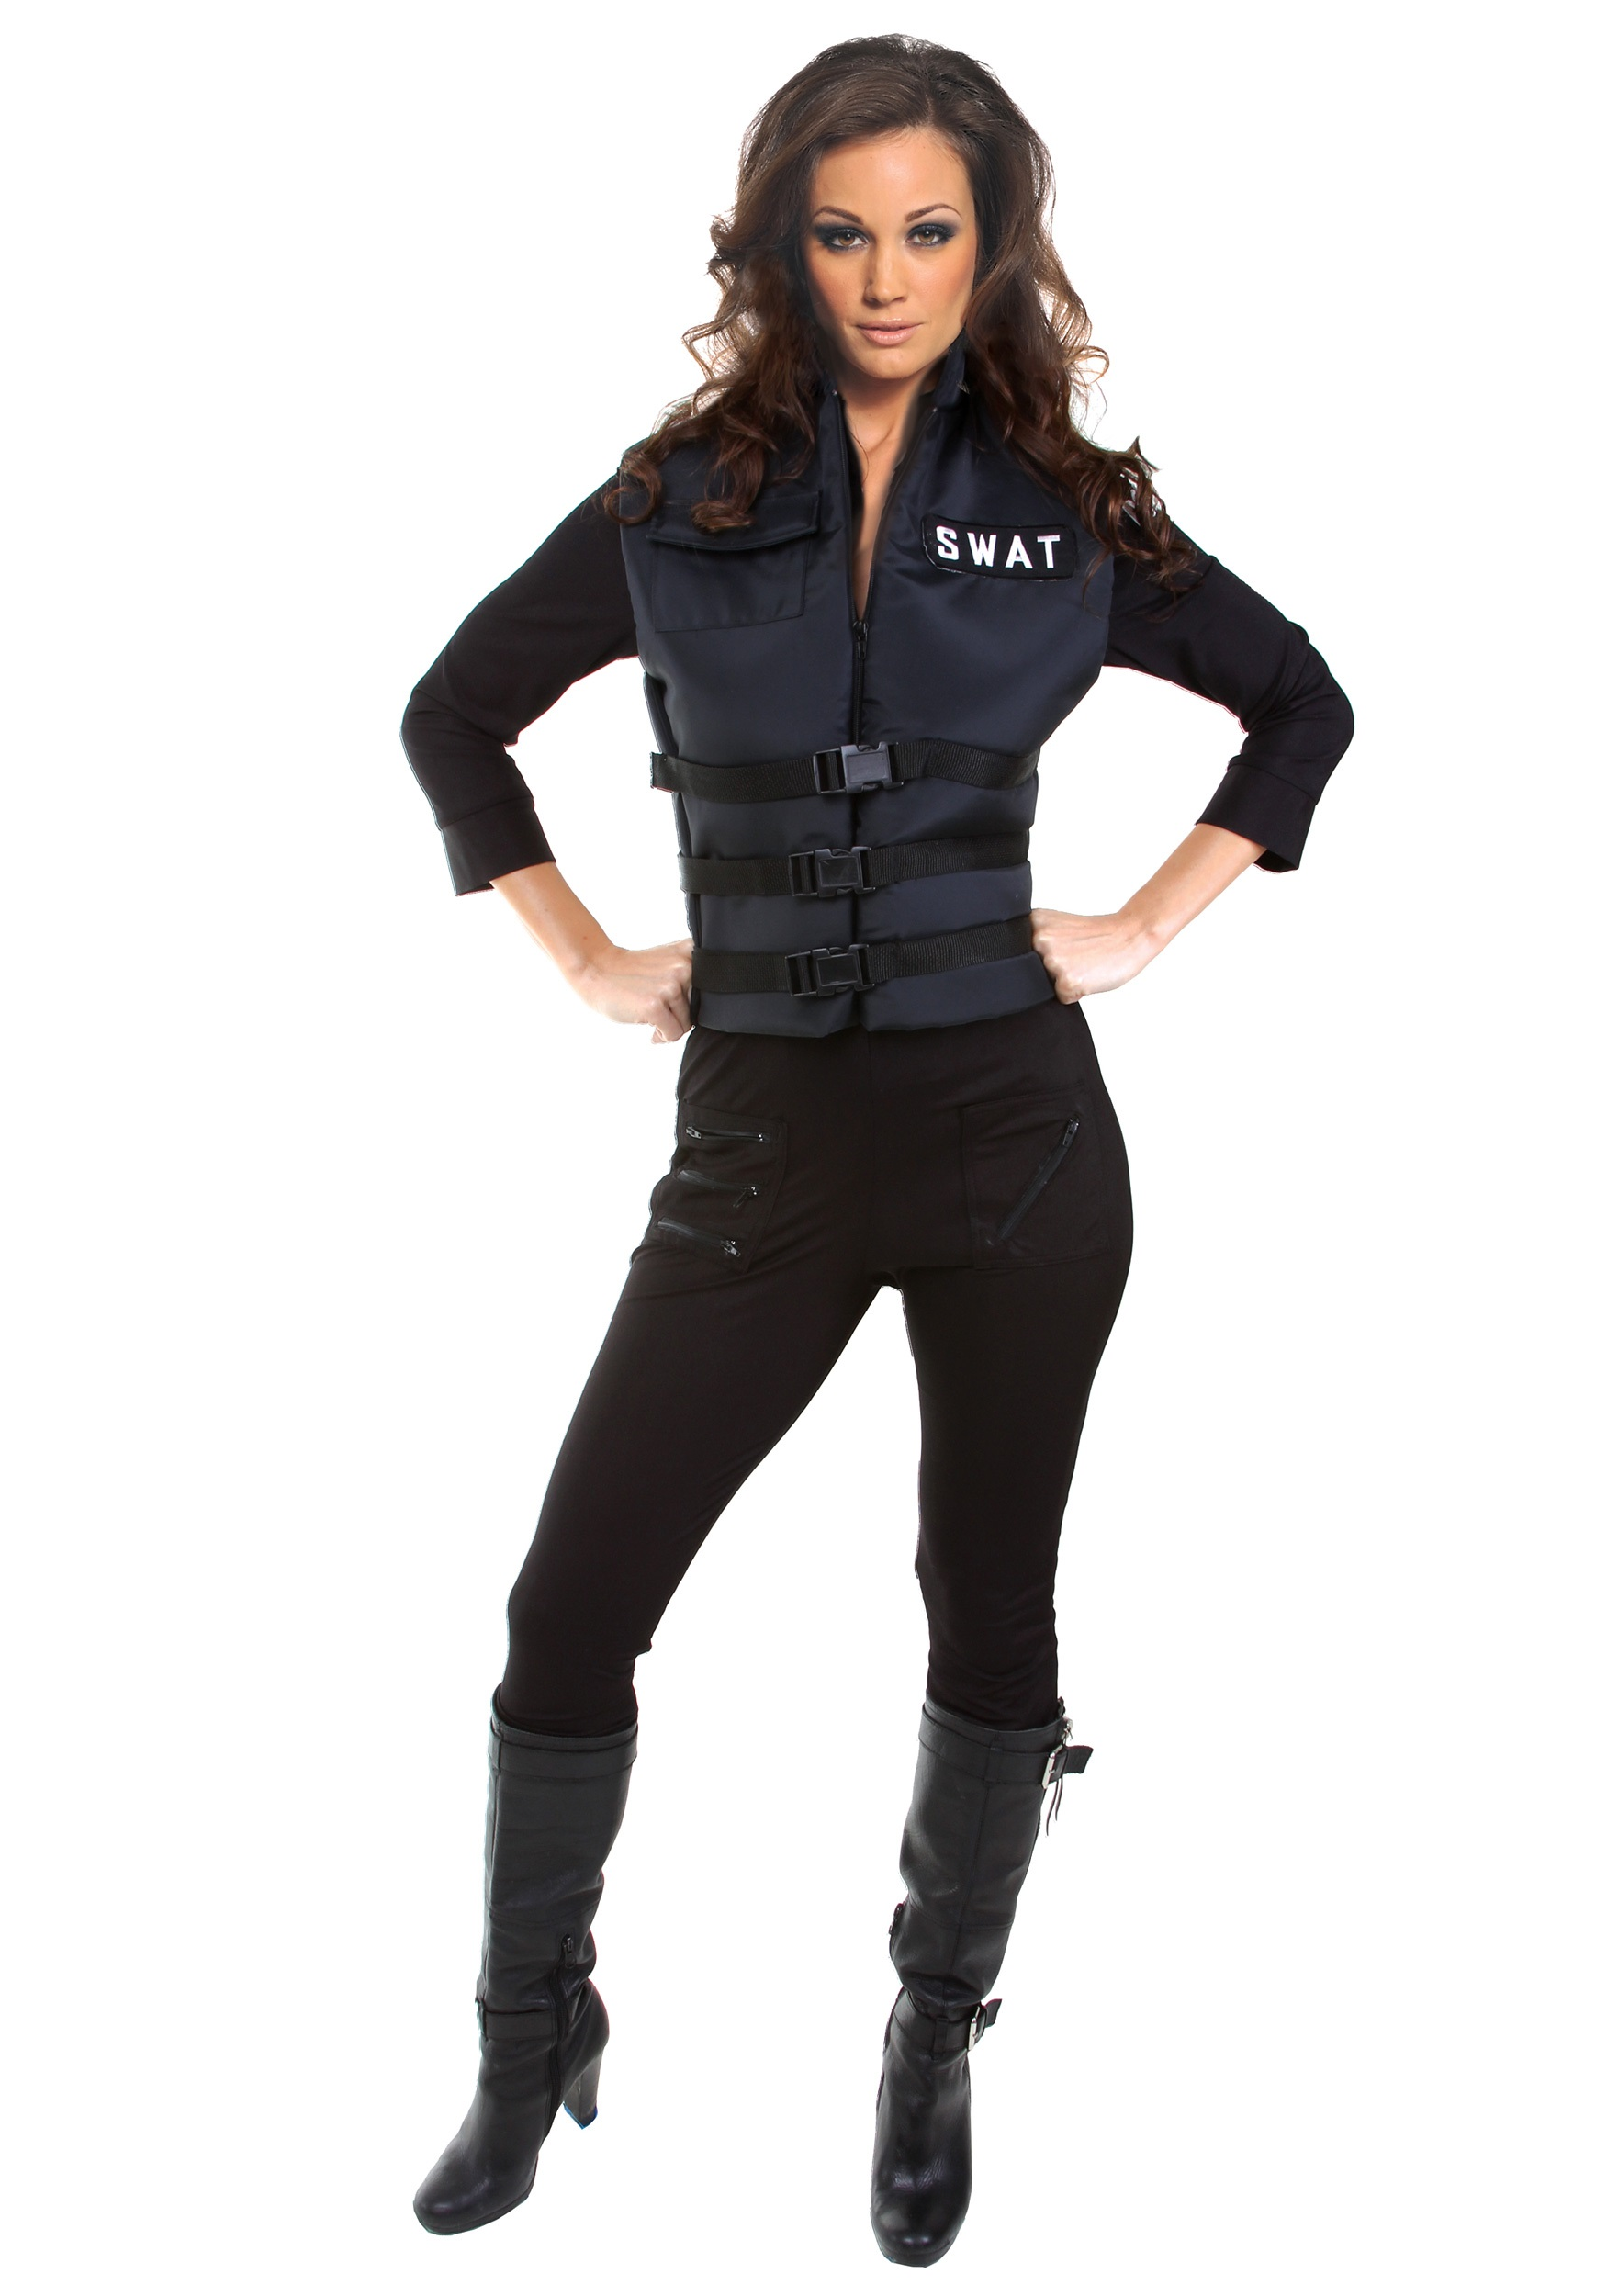 sexy swat girl costume - Swat Costumes For Halloween